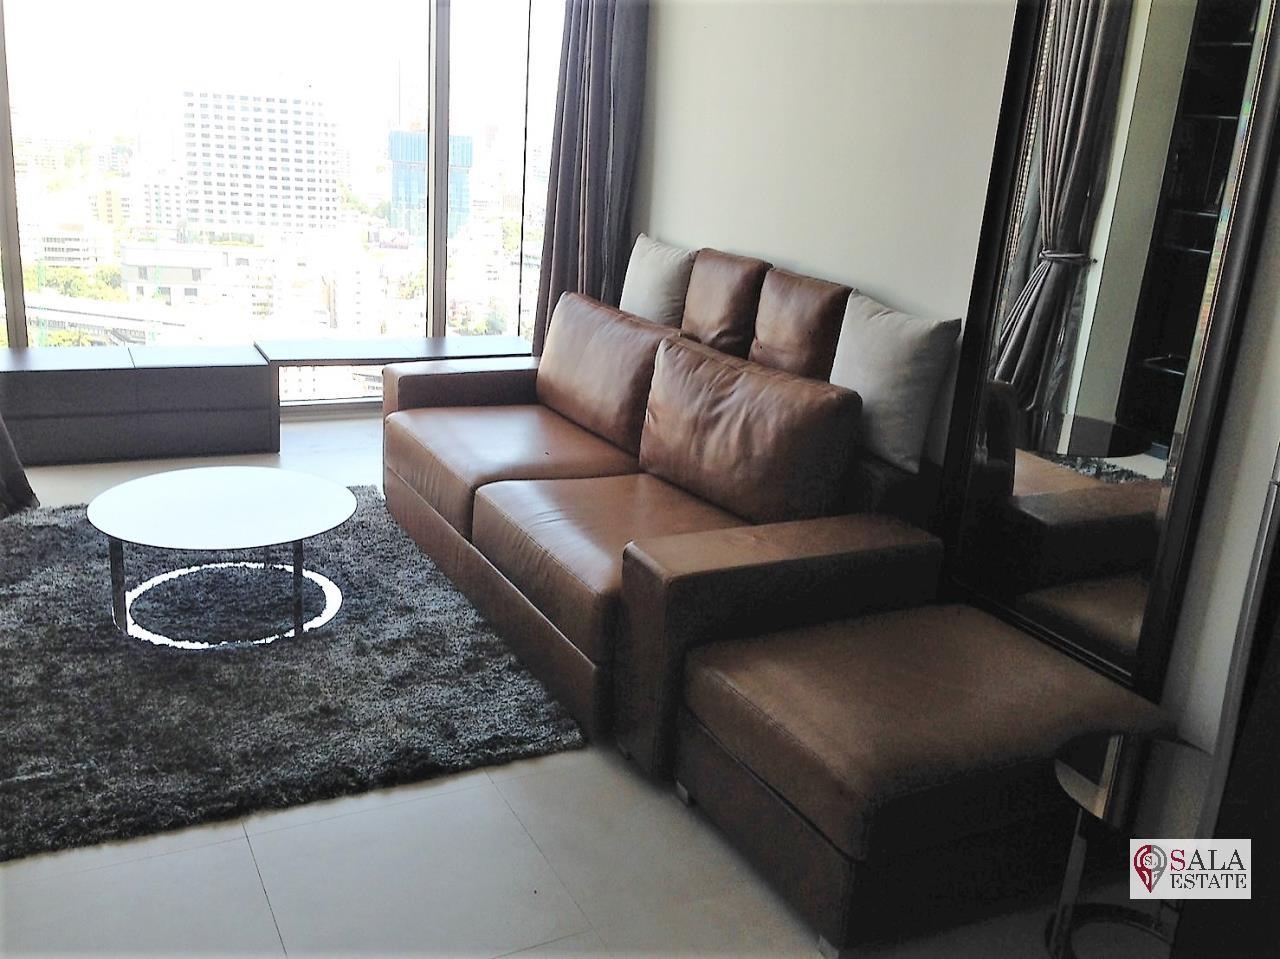 SALA ESTATE Agency's ASHTON MORPH 38 – BTS THONGLOR 3